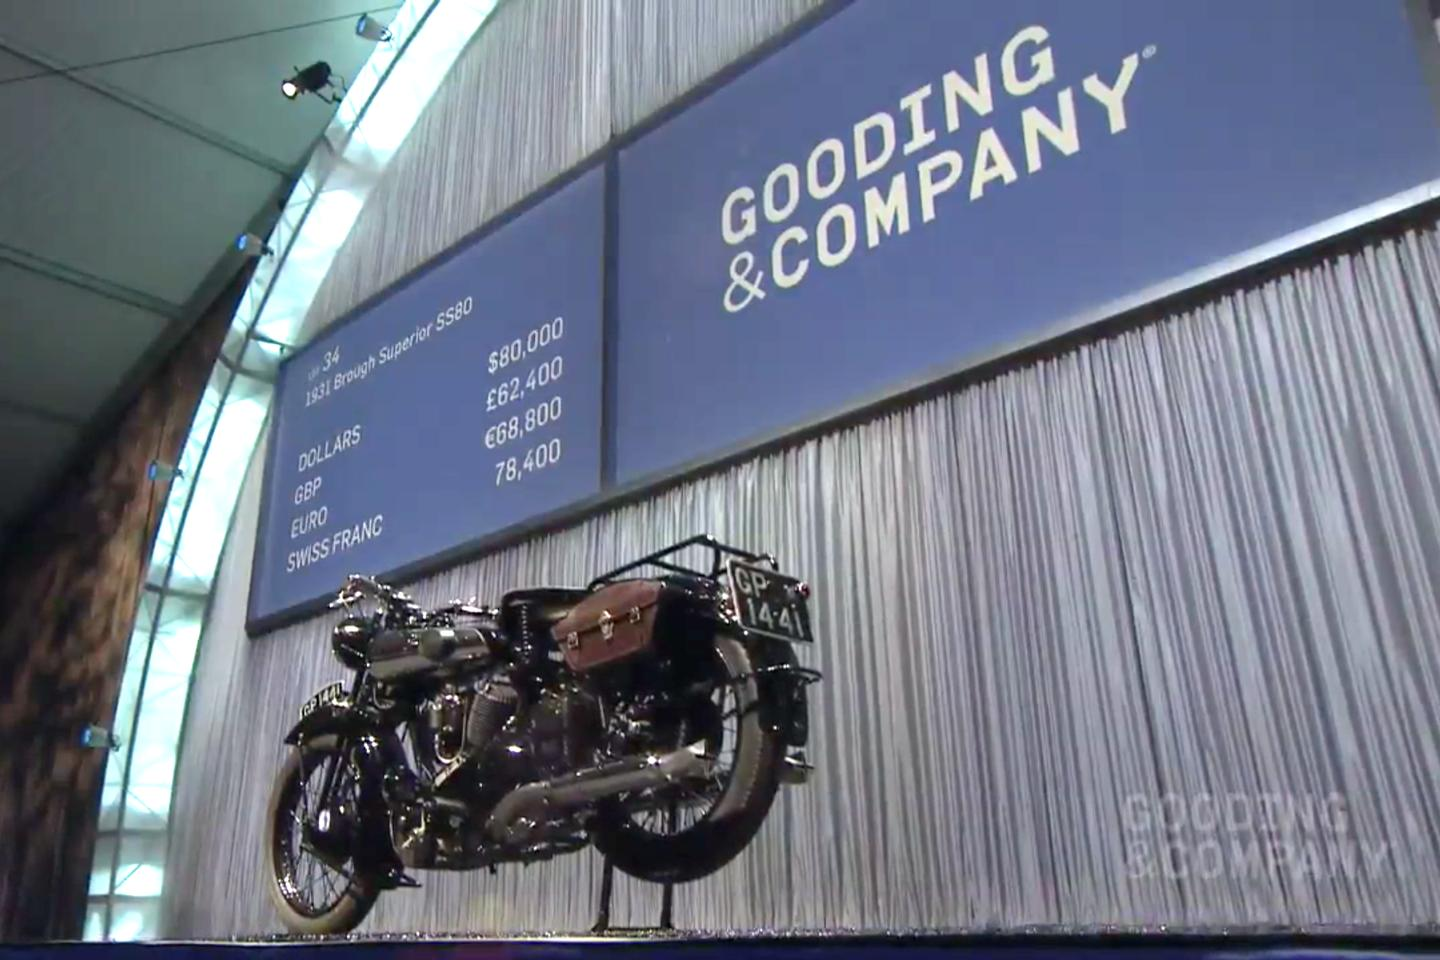 Sold at a Gooding auction at Pebble Beach in 2011 for $176,000, this 1931 Brough Superior SS80 was the most expensive Brough Superior SS80 ever sold at that time. It sold for just $88,000 in a no reserve auction - quite some bargain.